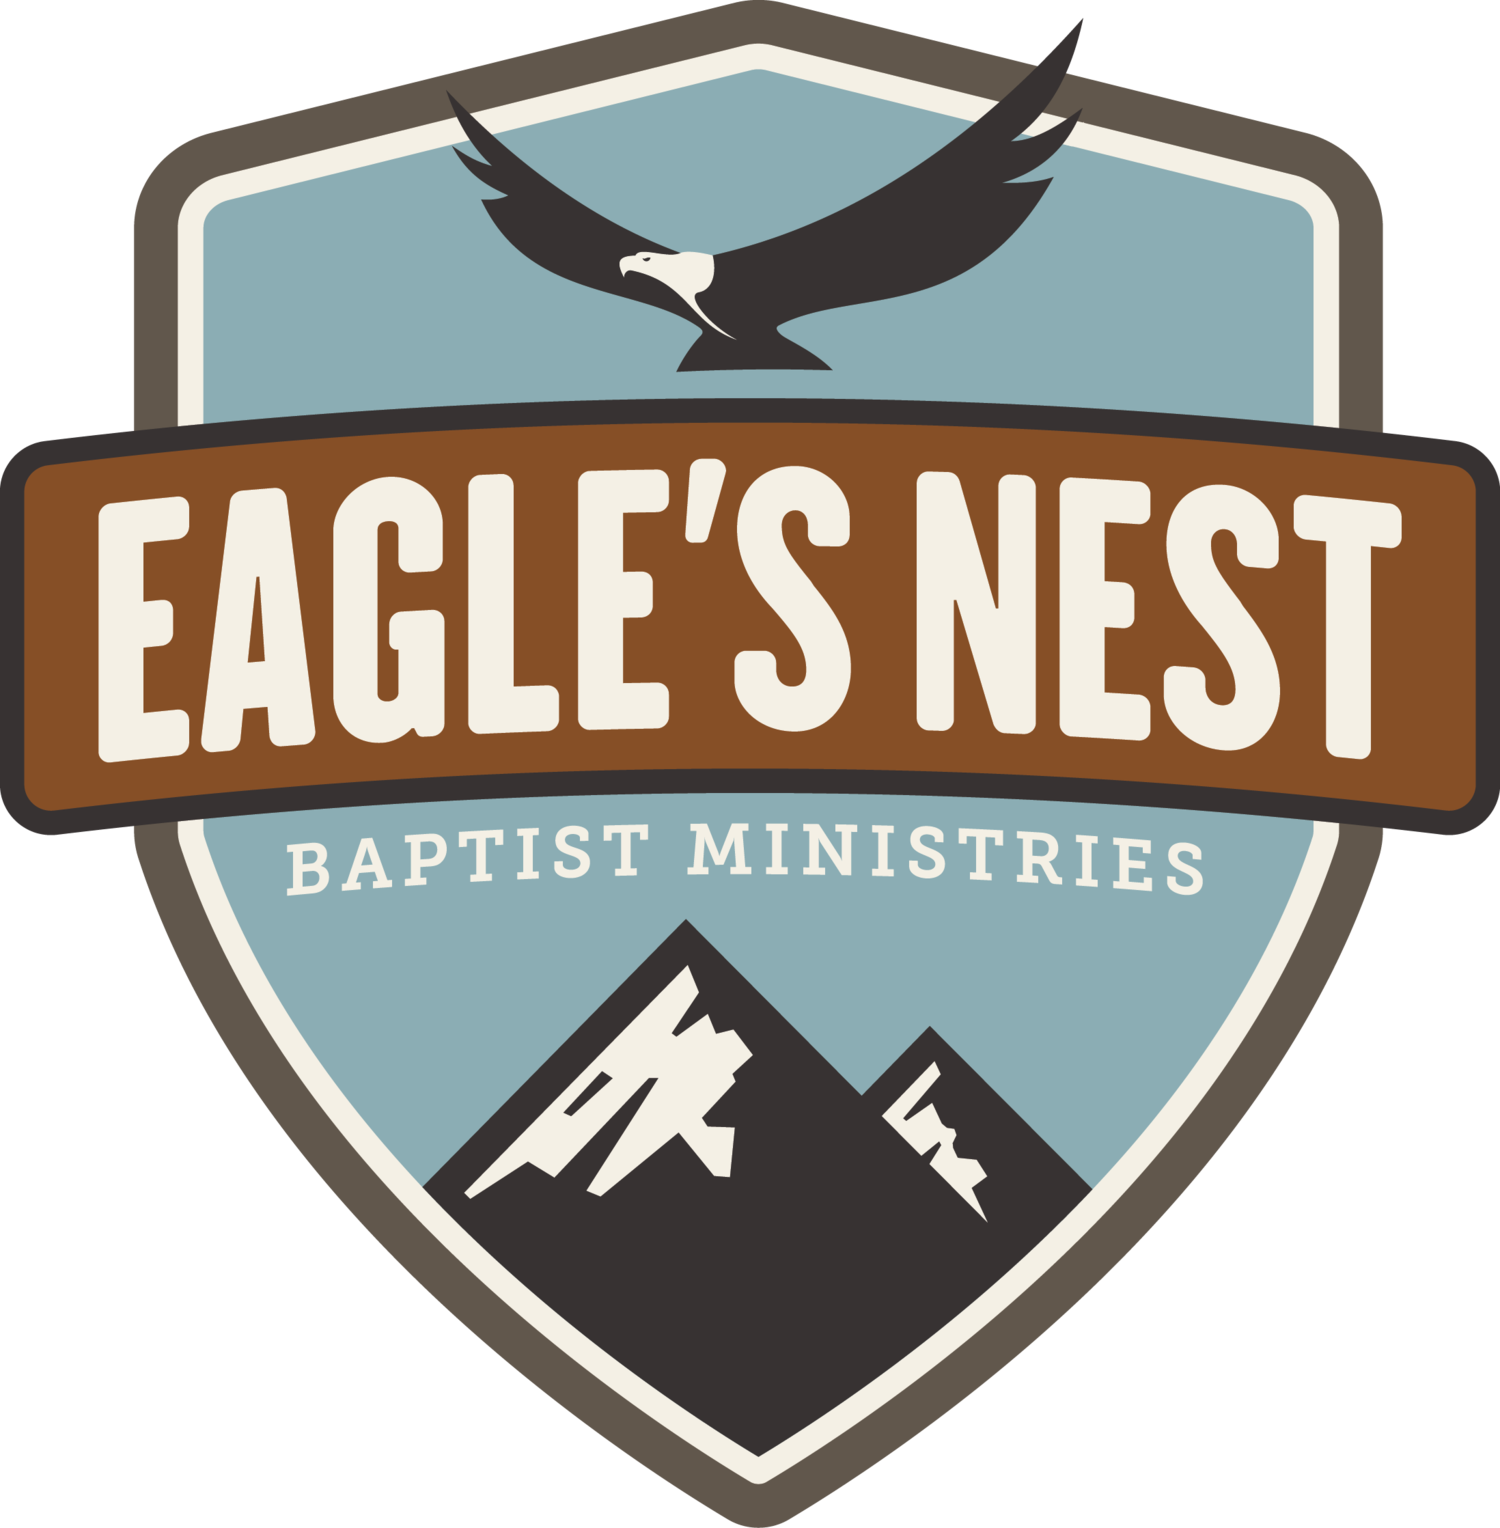 Eagle's Nest Baptist Ministries